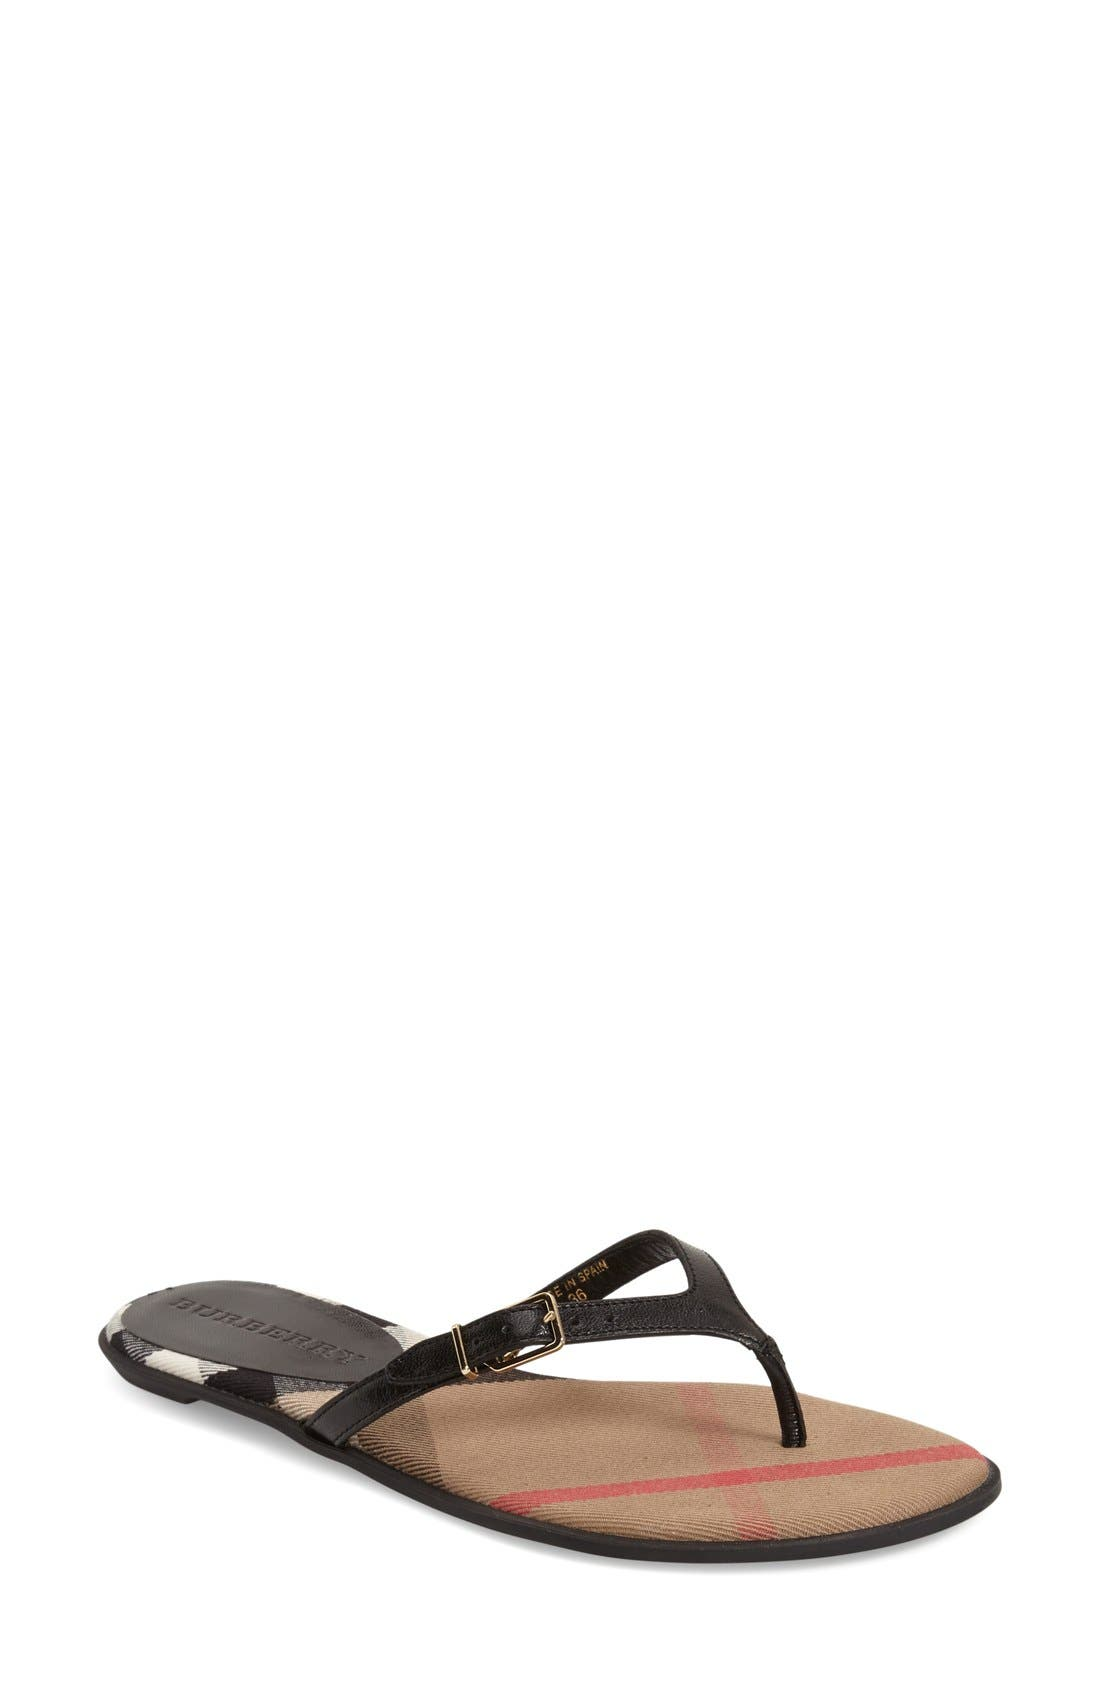 Burberry 'Meadow' Sandal